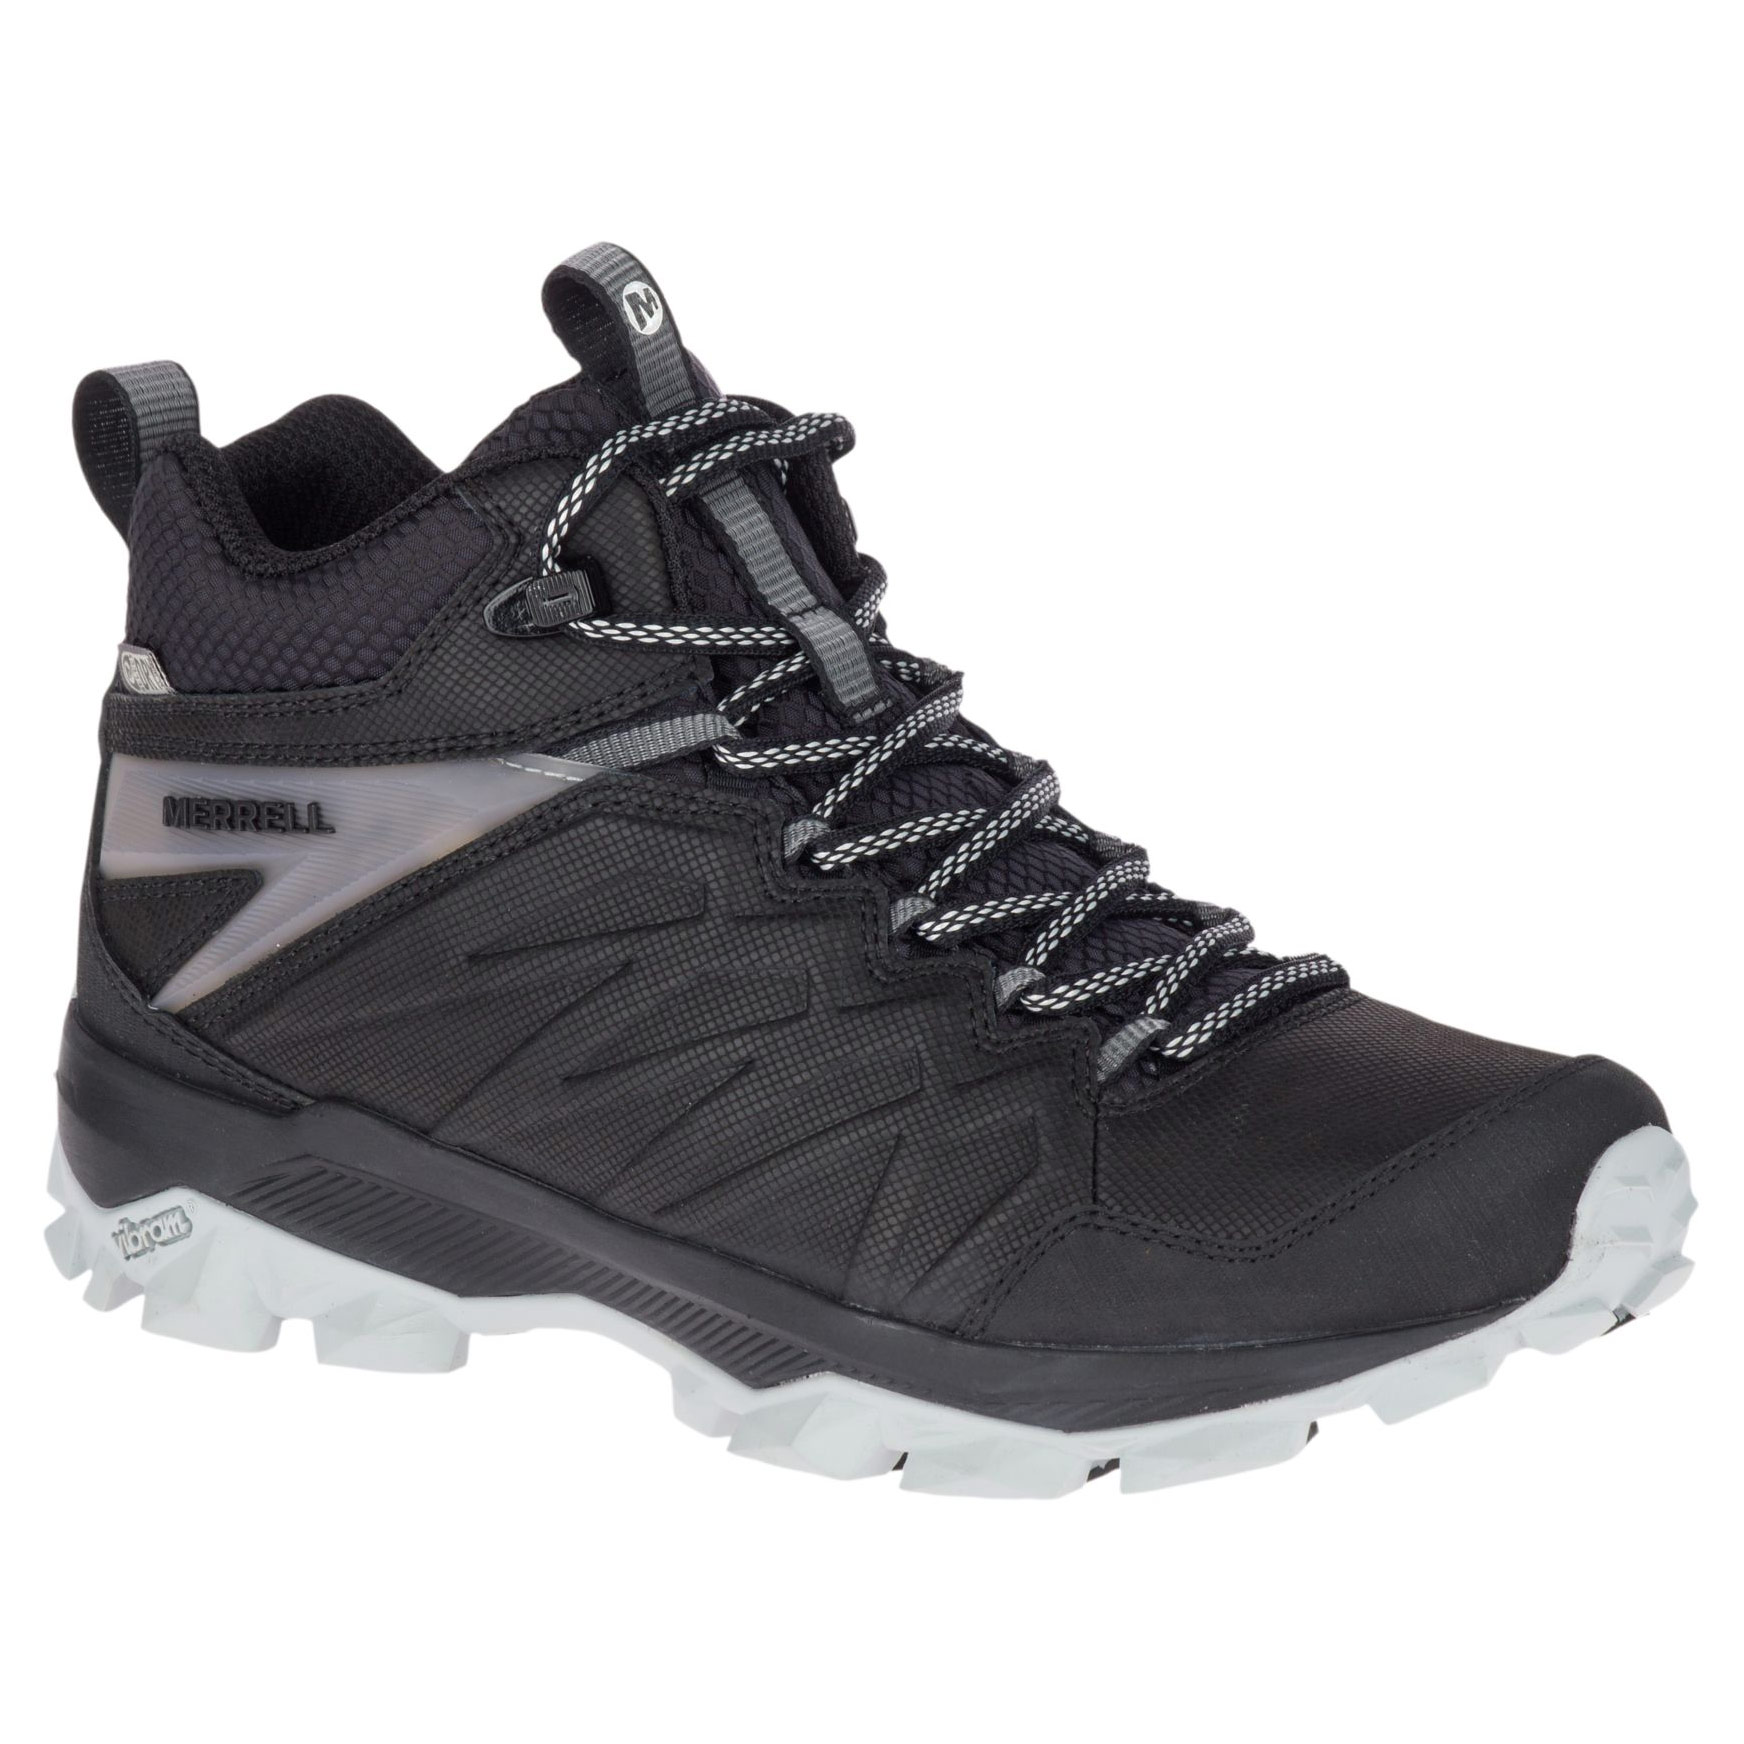 THERMO FREEZE MID WP - WOMEN'S